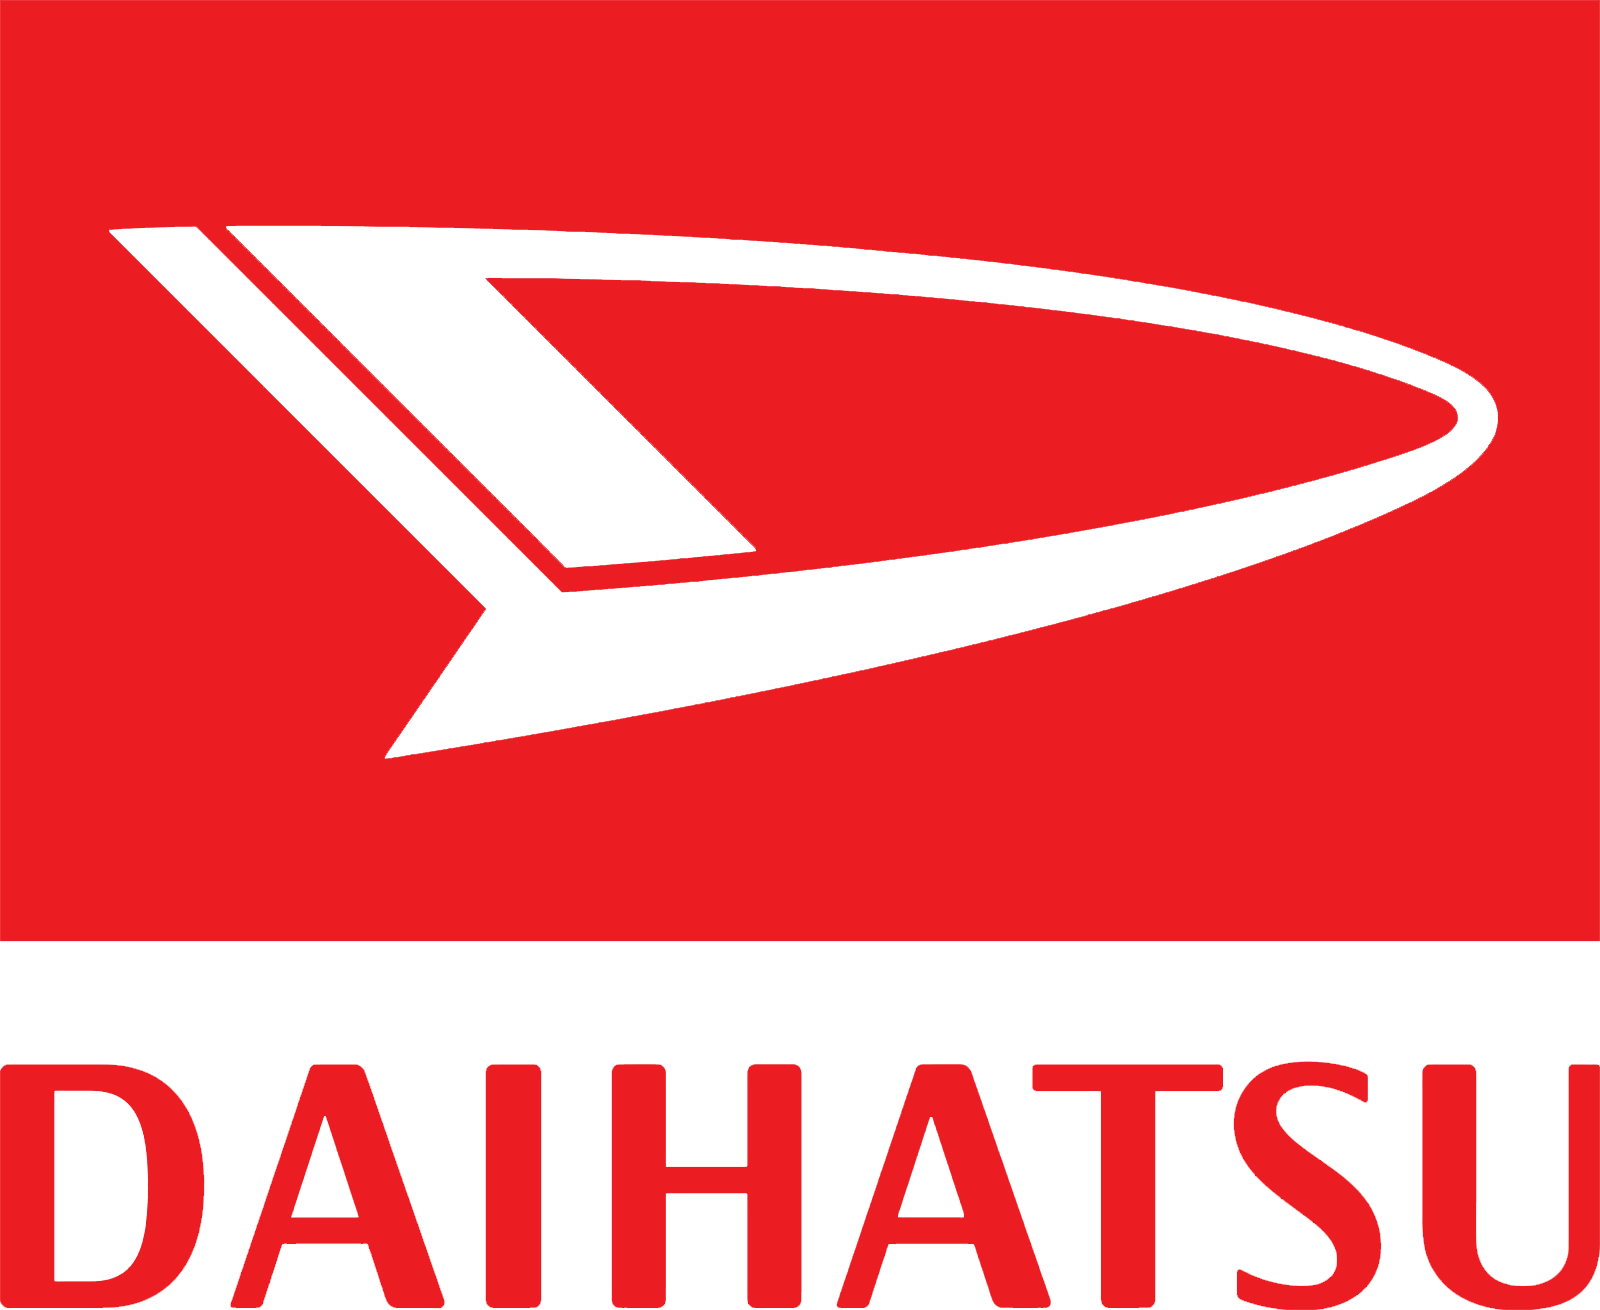 Daihatsu Terious Car Keys Repair Or Replacement (alt)% Daihatsu Terious Car Keys Repair Or Replacement Daihatsu Terious Car Keys Repair Or Replacement